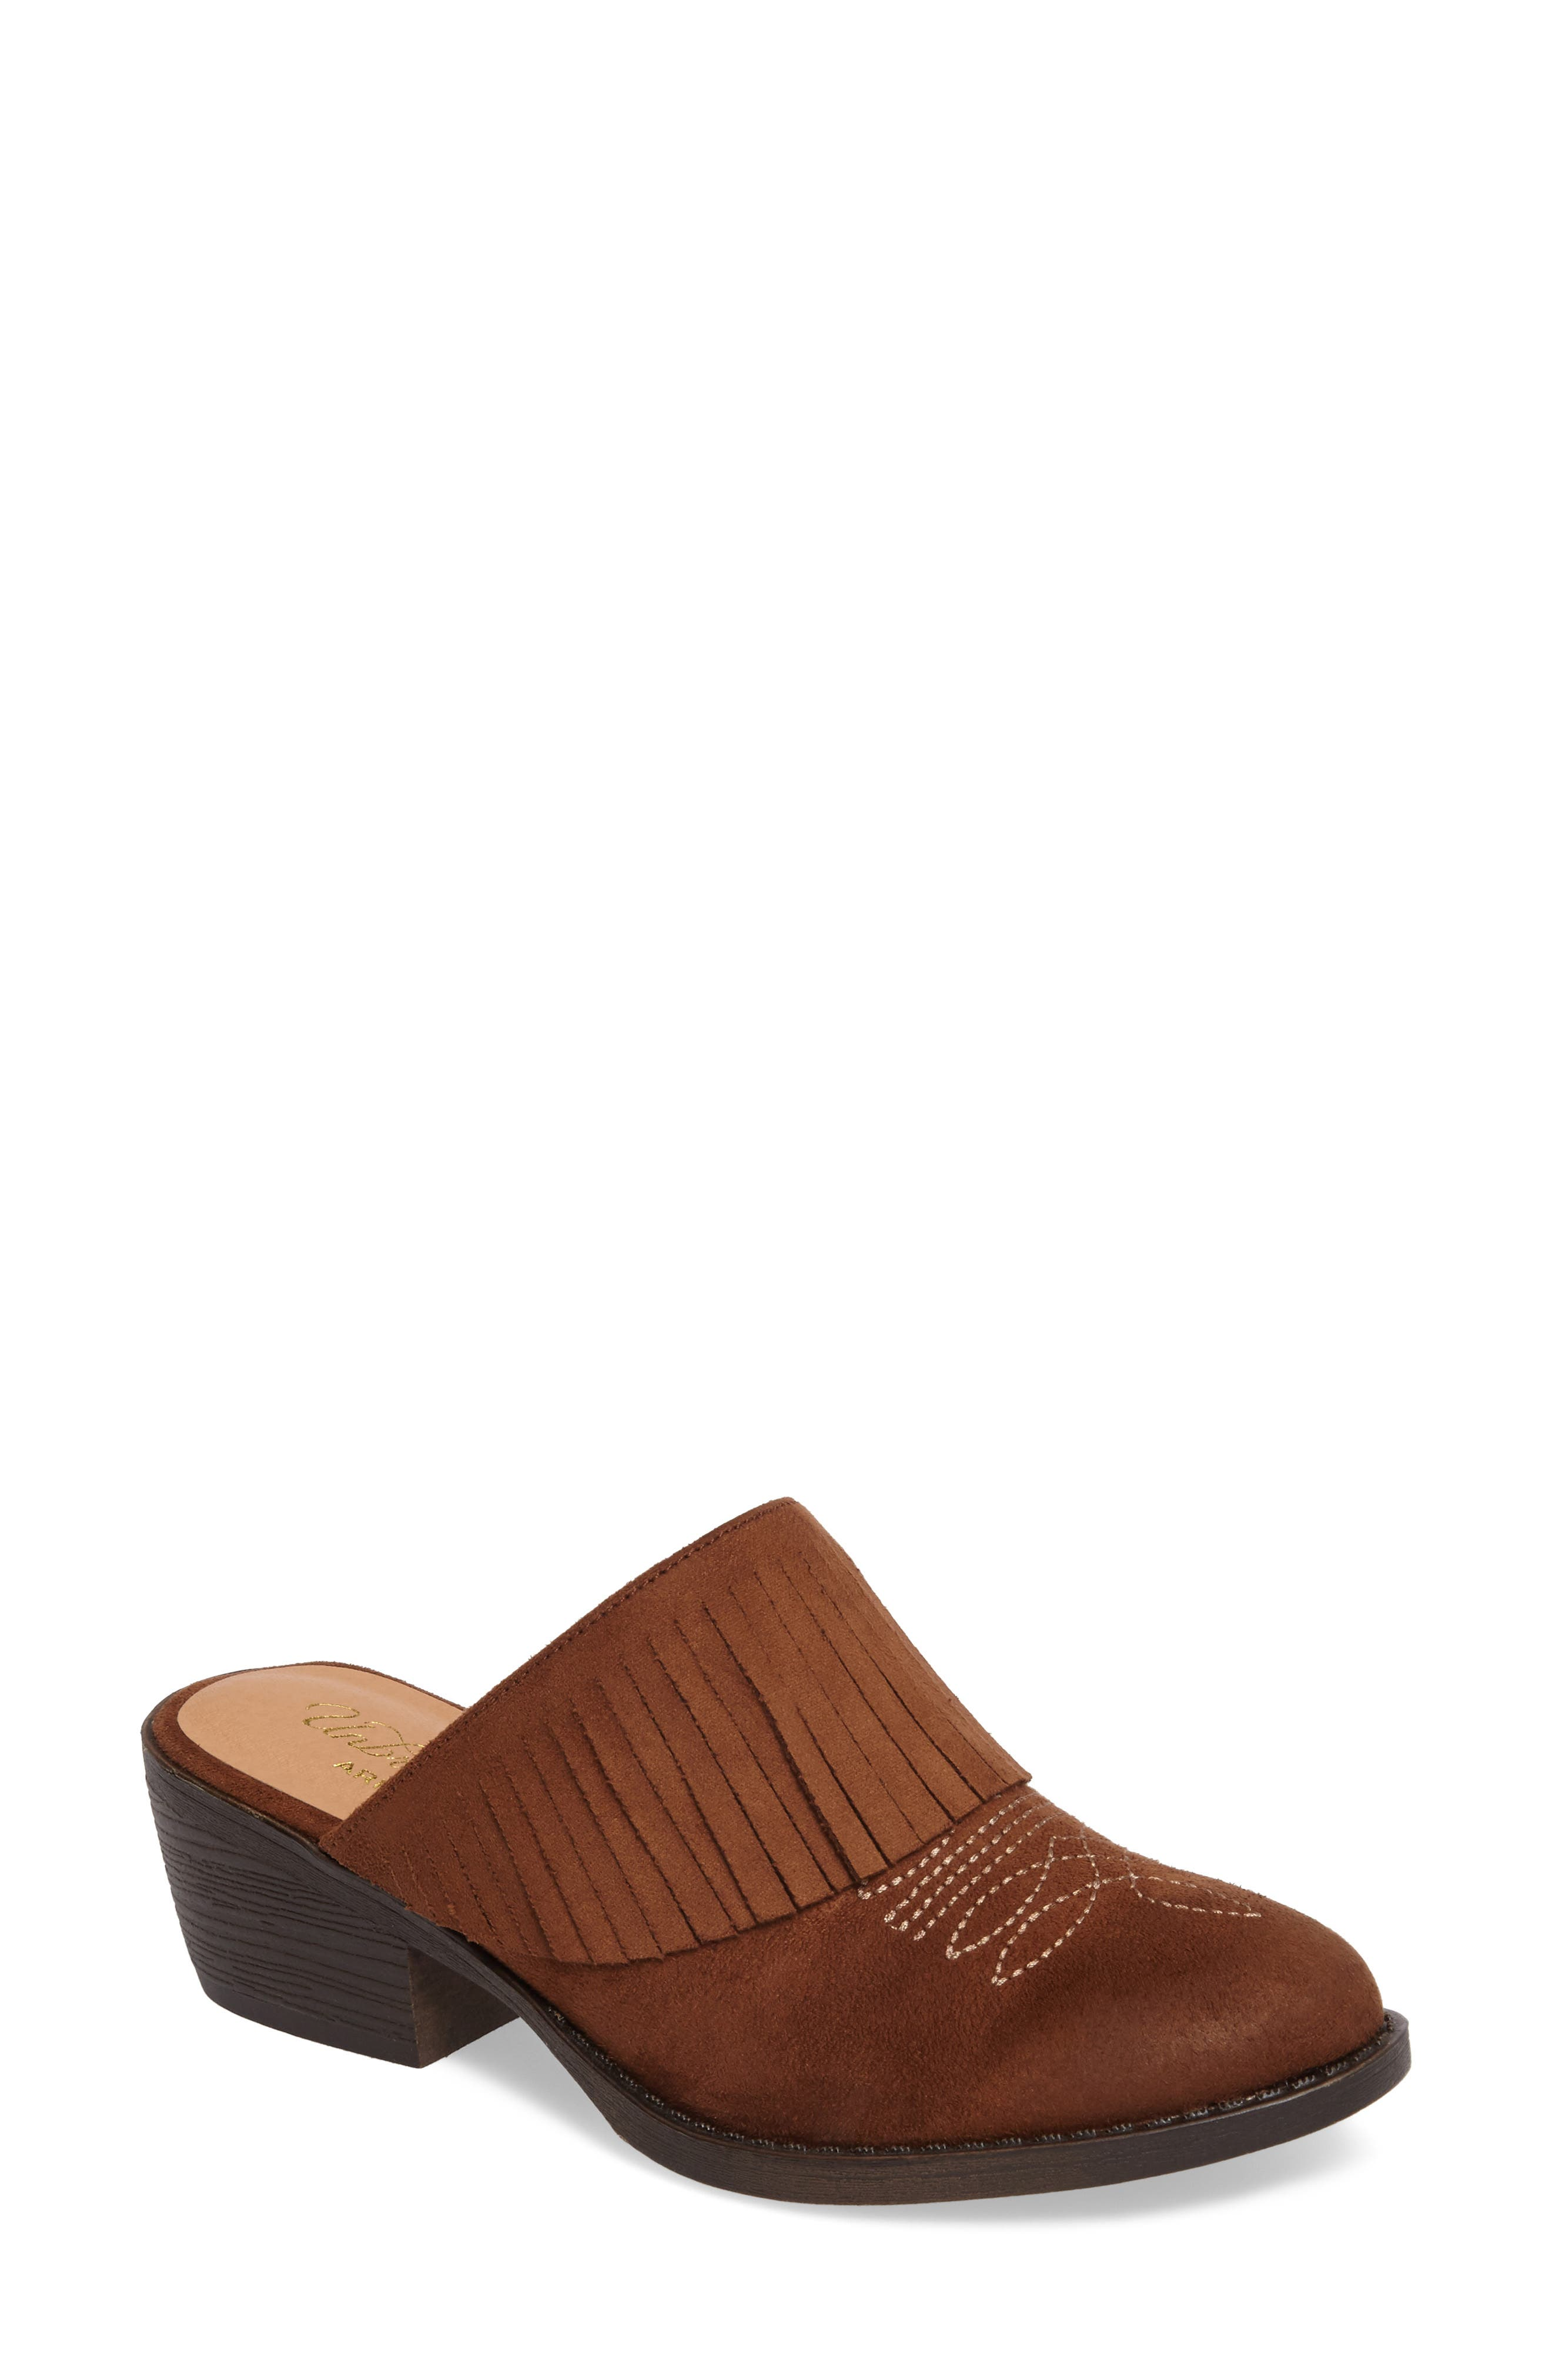 Unbridled Shirley Mule,                         Main,                         color, Whiskey Suede